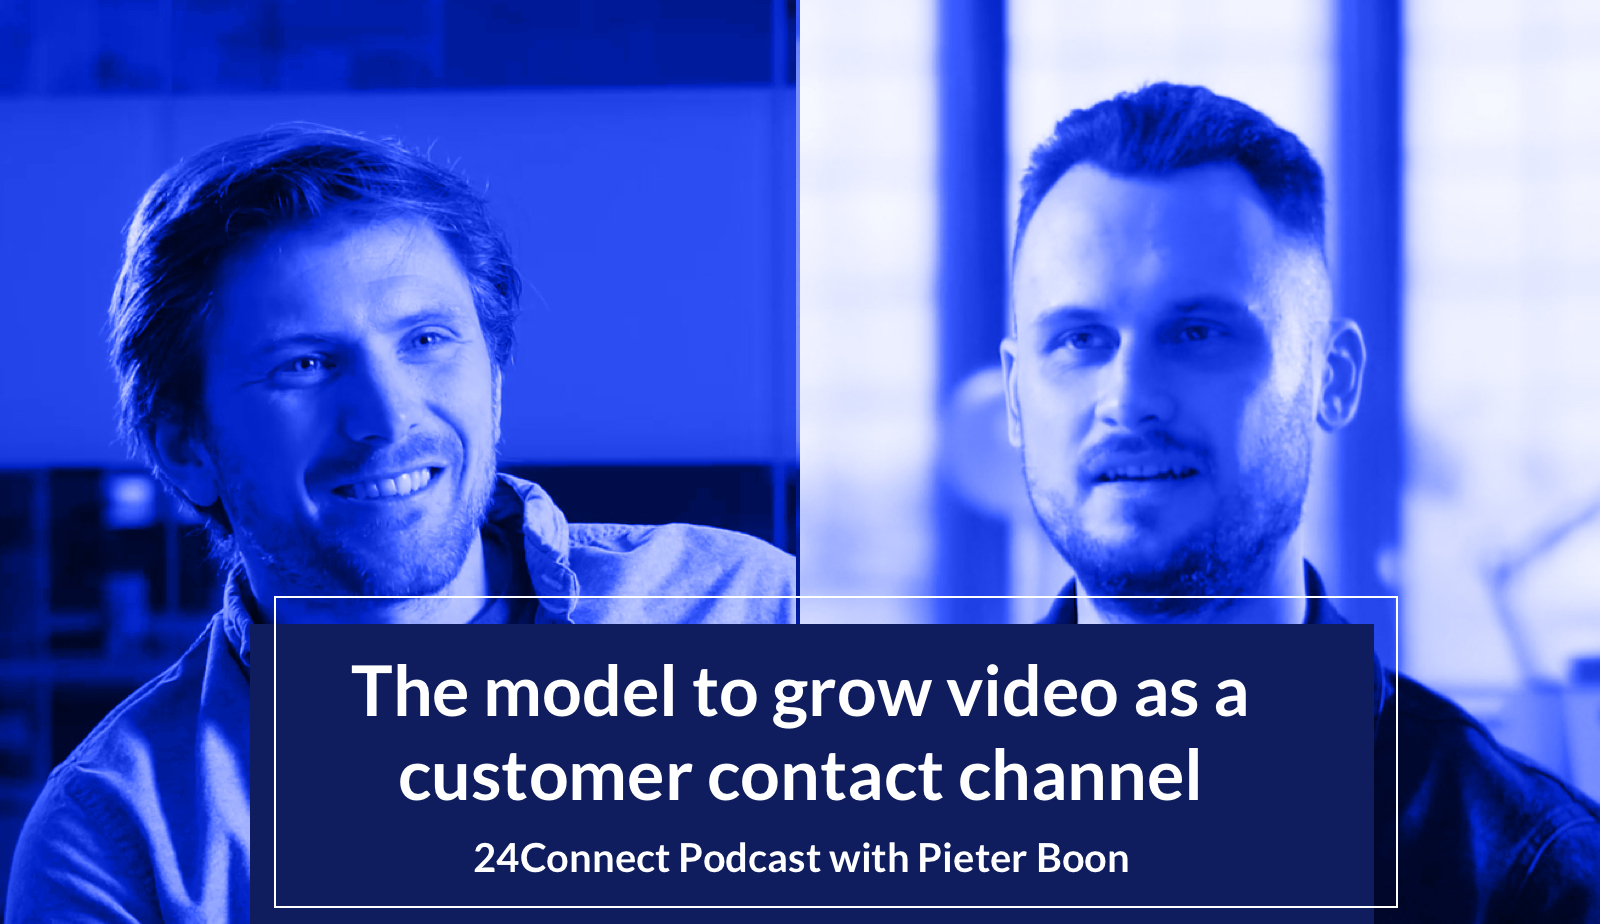 How to successfully grow video customer contact with our Growth Model